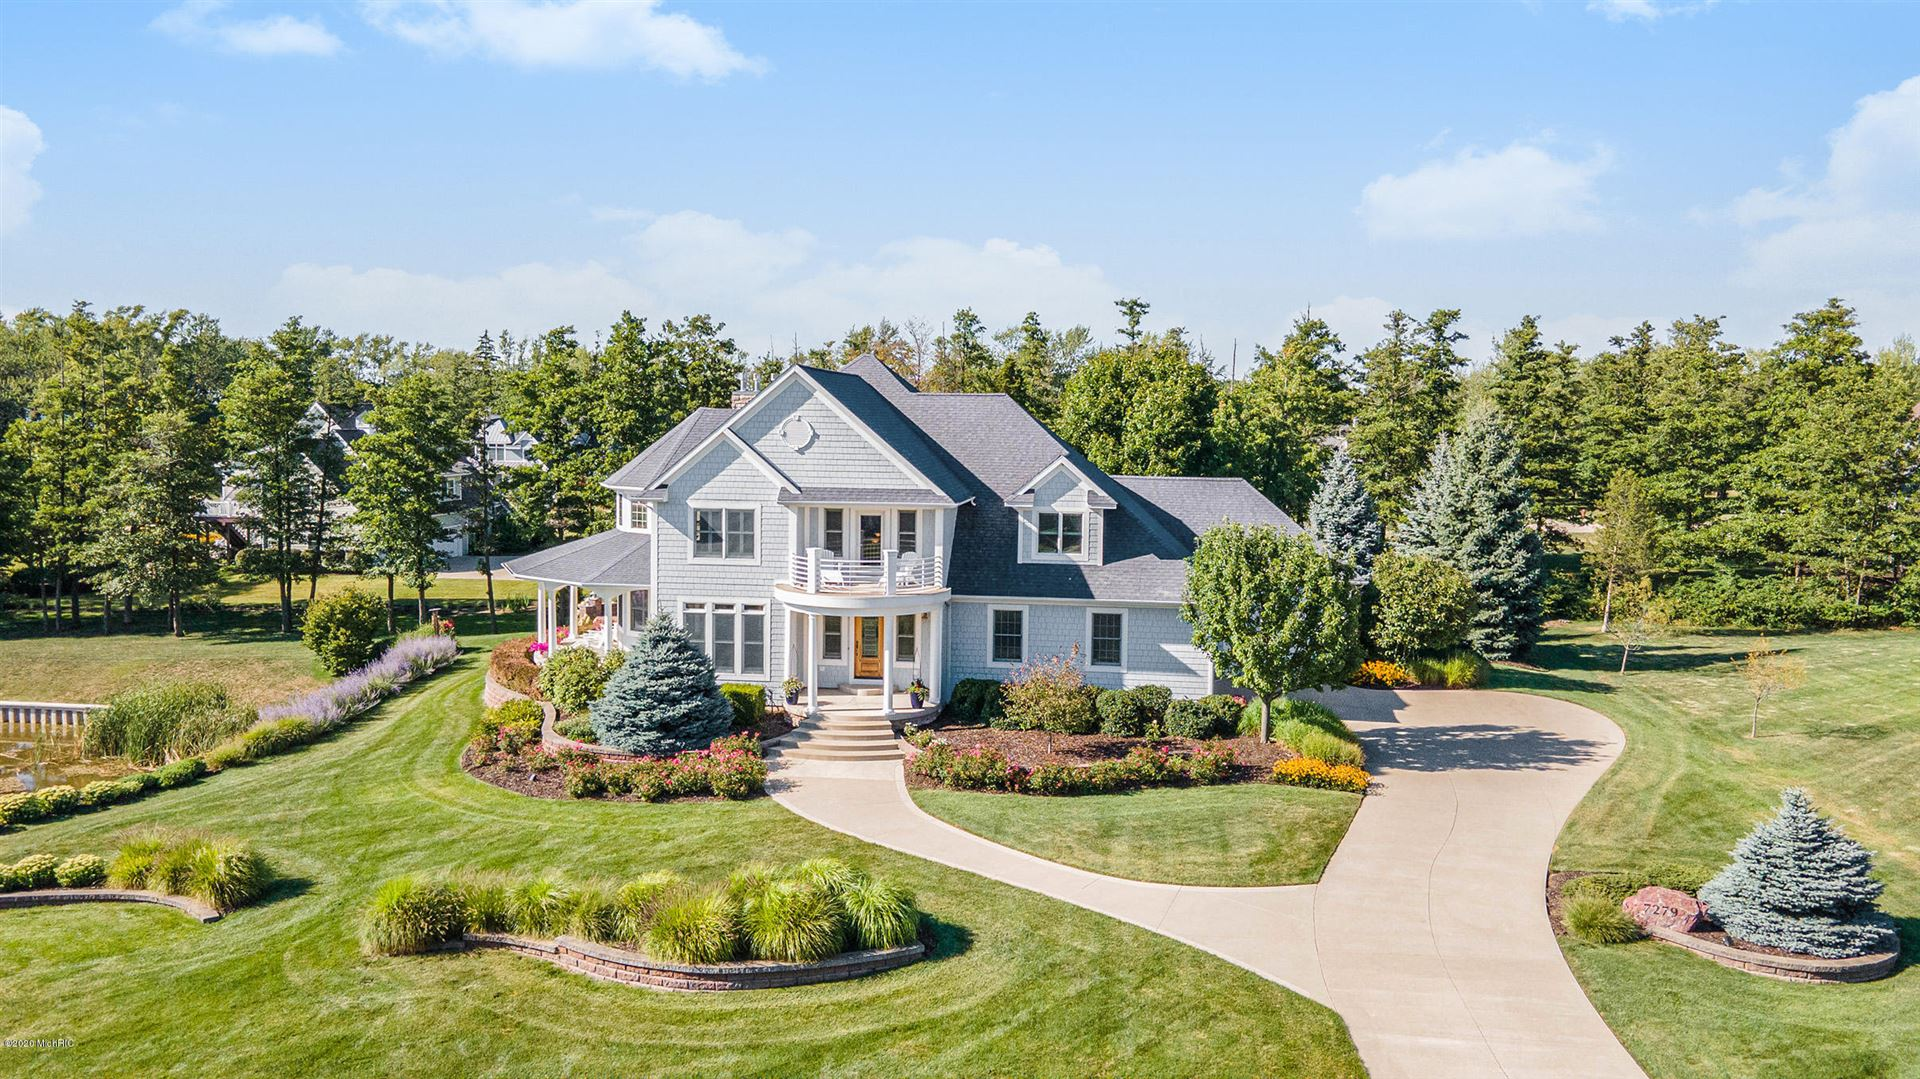 7279 Beverly Drive, South Haven, MI 49090 - MLS#: 20034840